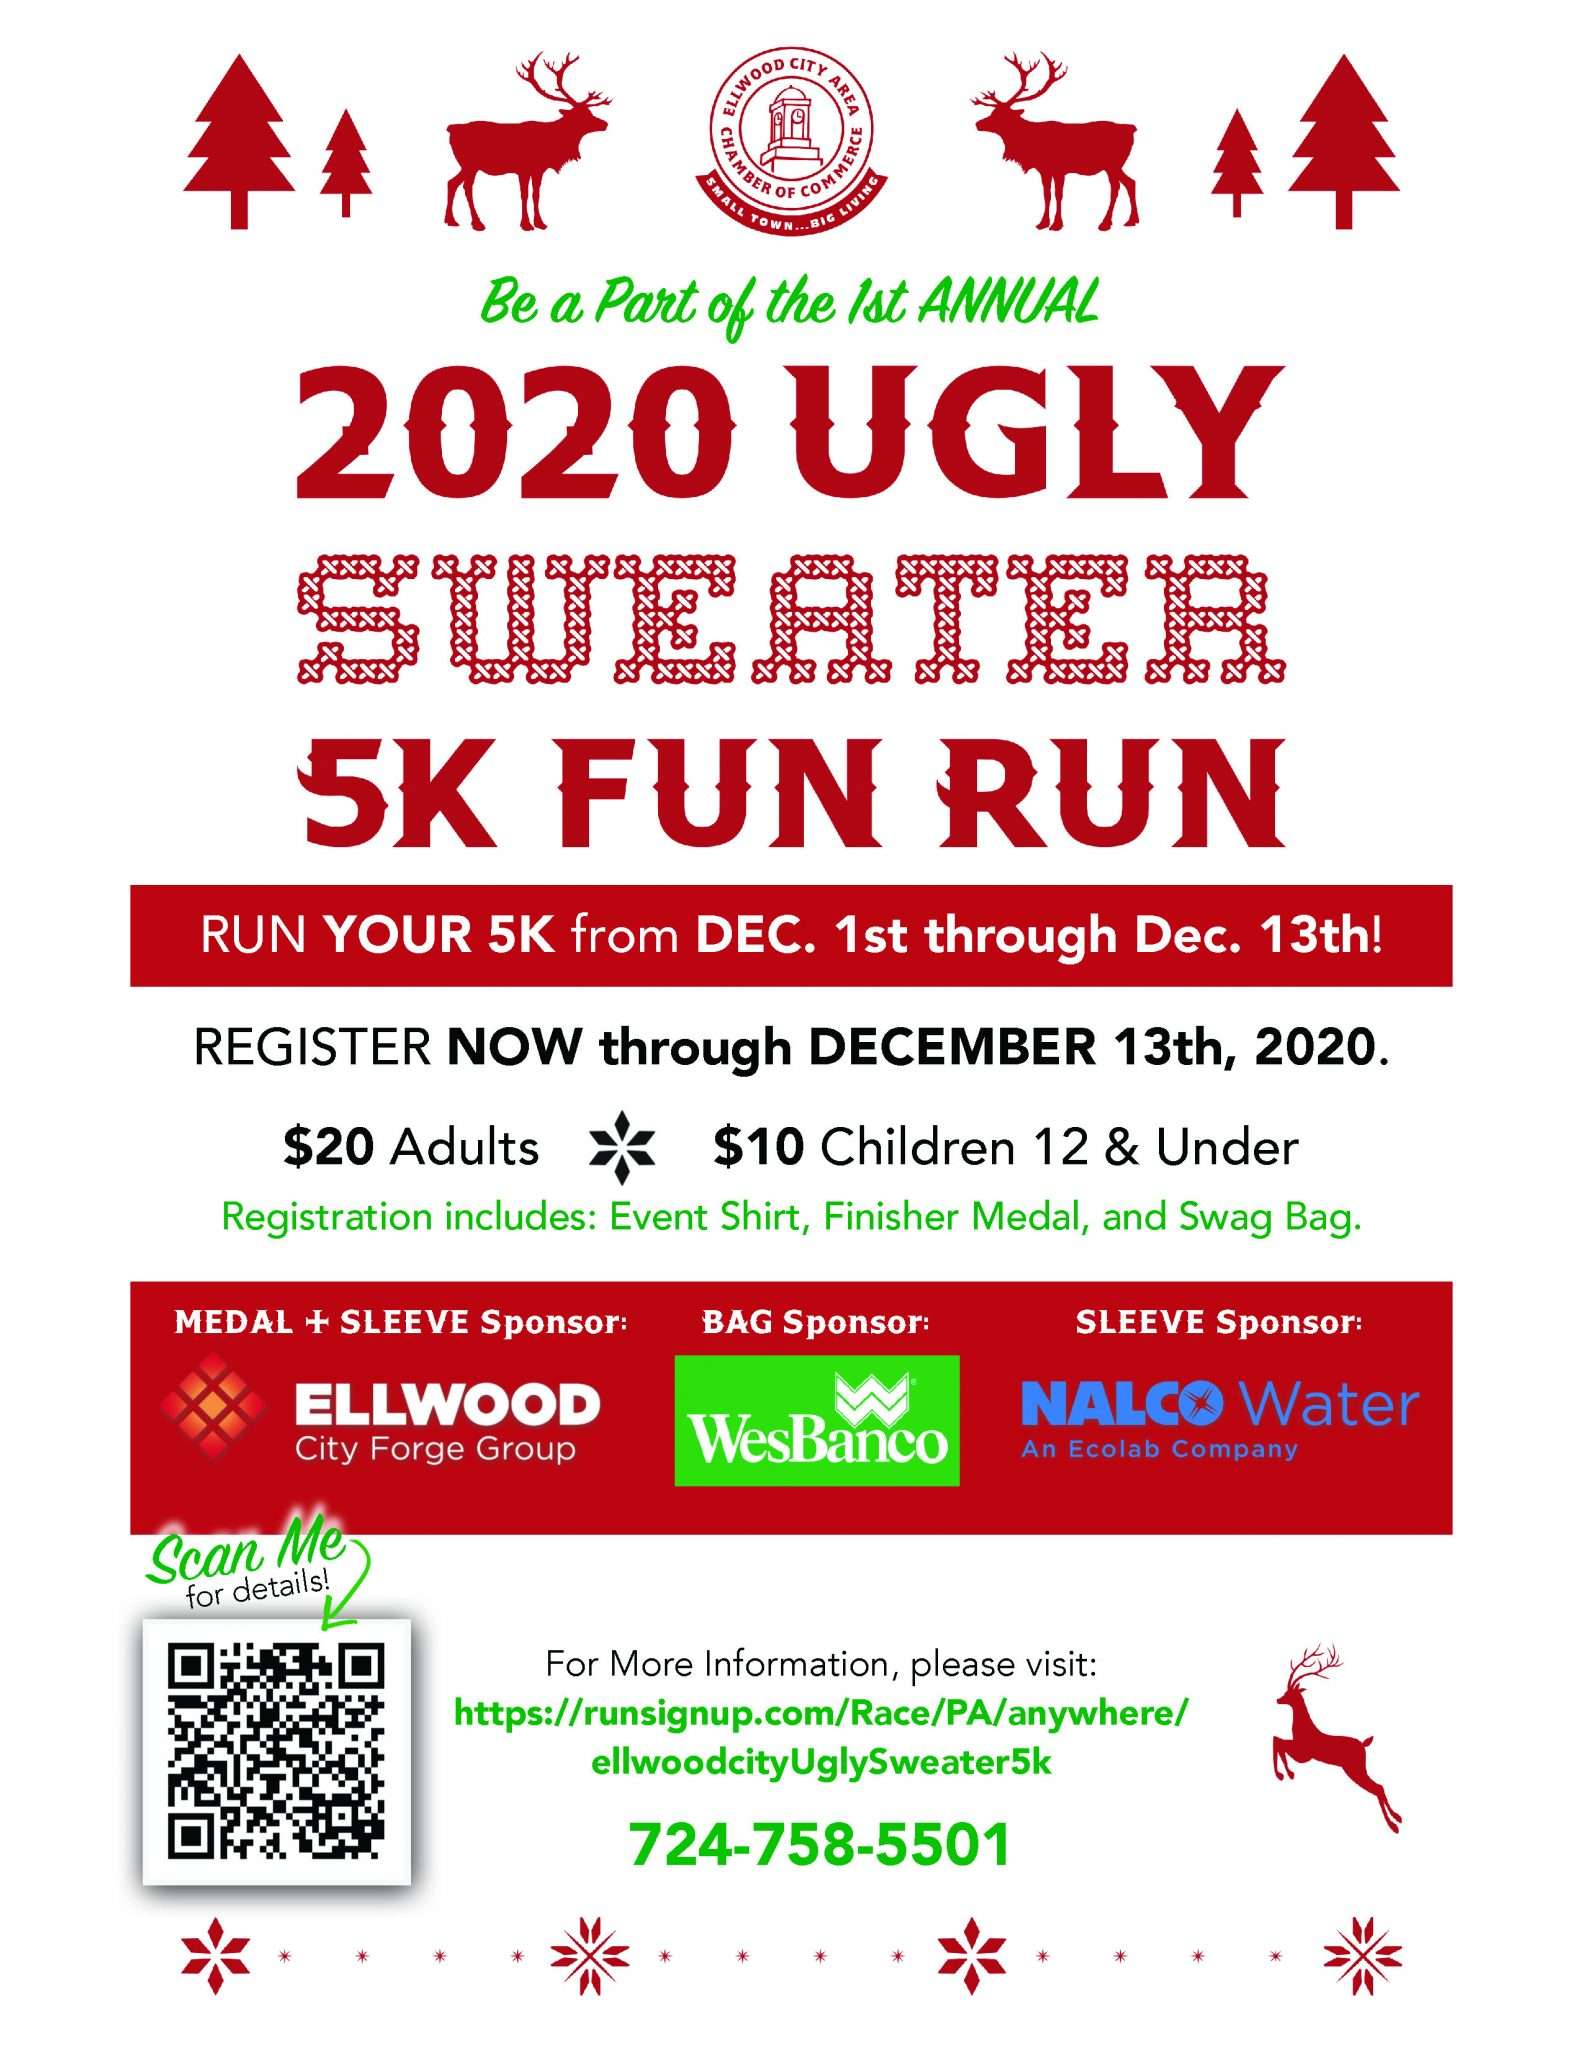 RUN YOUR 5K from DEC. 1st through Dec. 13th! REGISTER NOW through DECEMBER 13th, 2020. $20 Adults $10 Children 12 & Under Registration includes: Event Shirt, Finisher Medal, and Swag Bag.